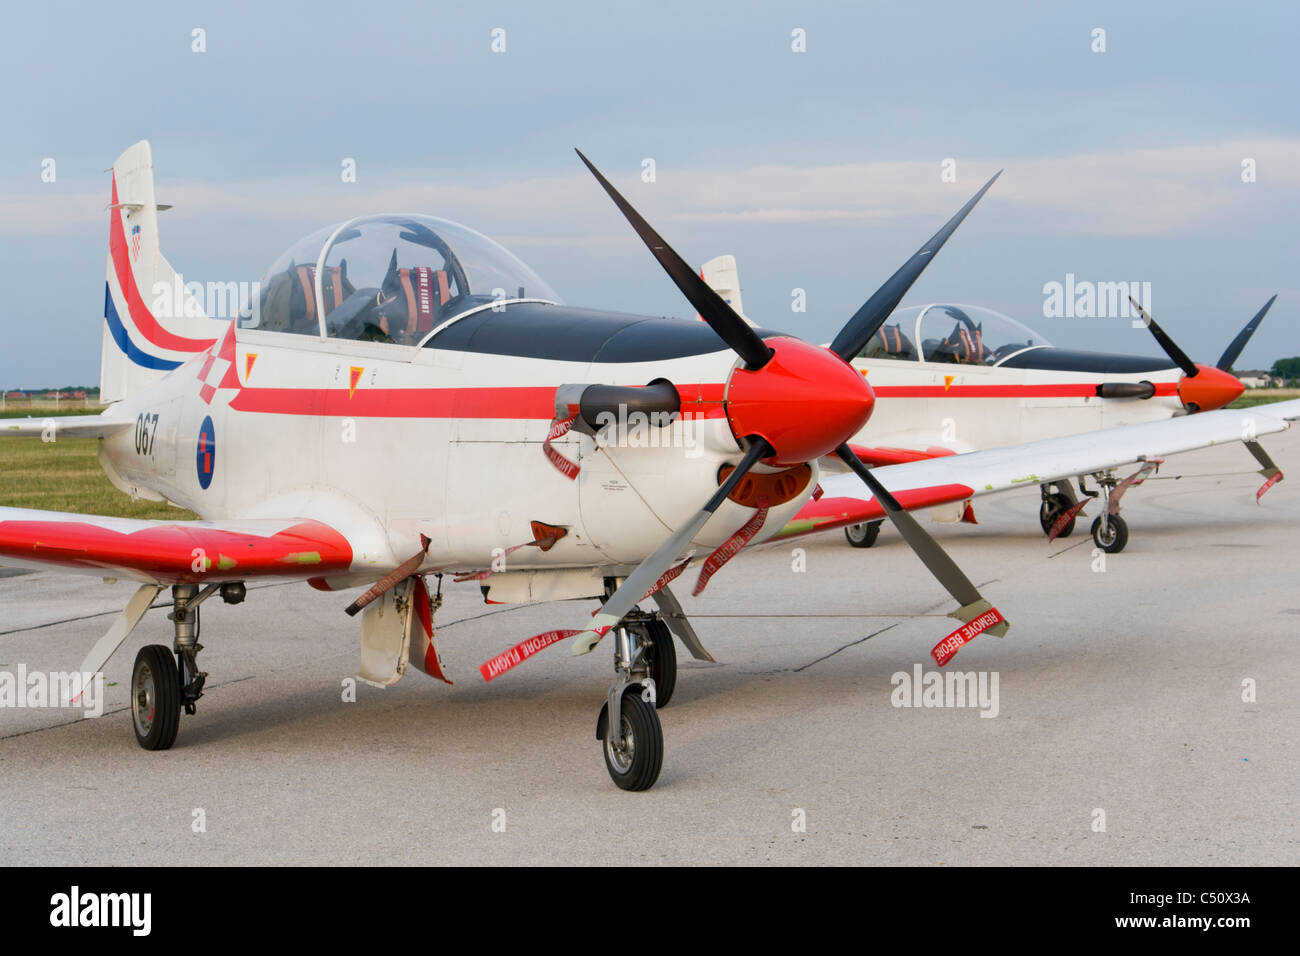 'Wings of storm' (Krila oluje) Croatian air force aerobatic team aircraft lined on an airport apron - Stock Image